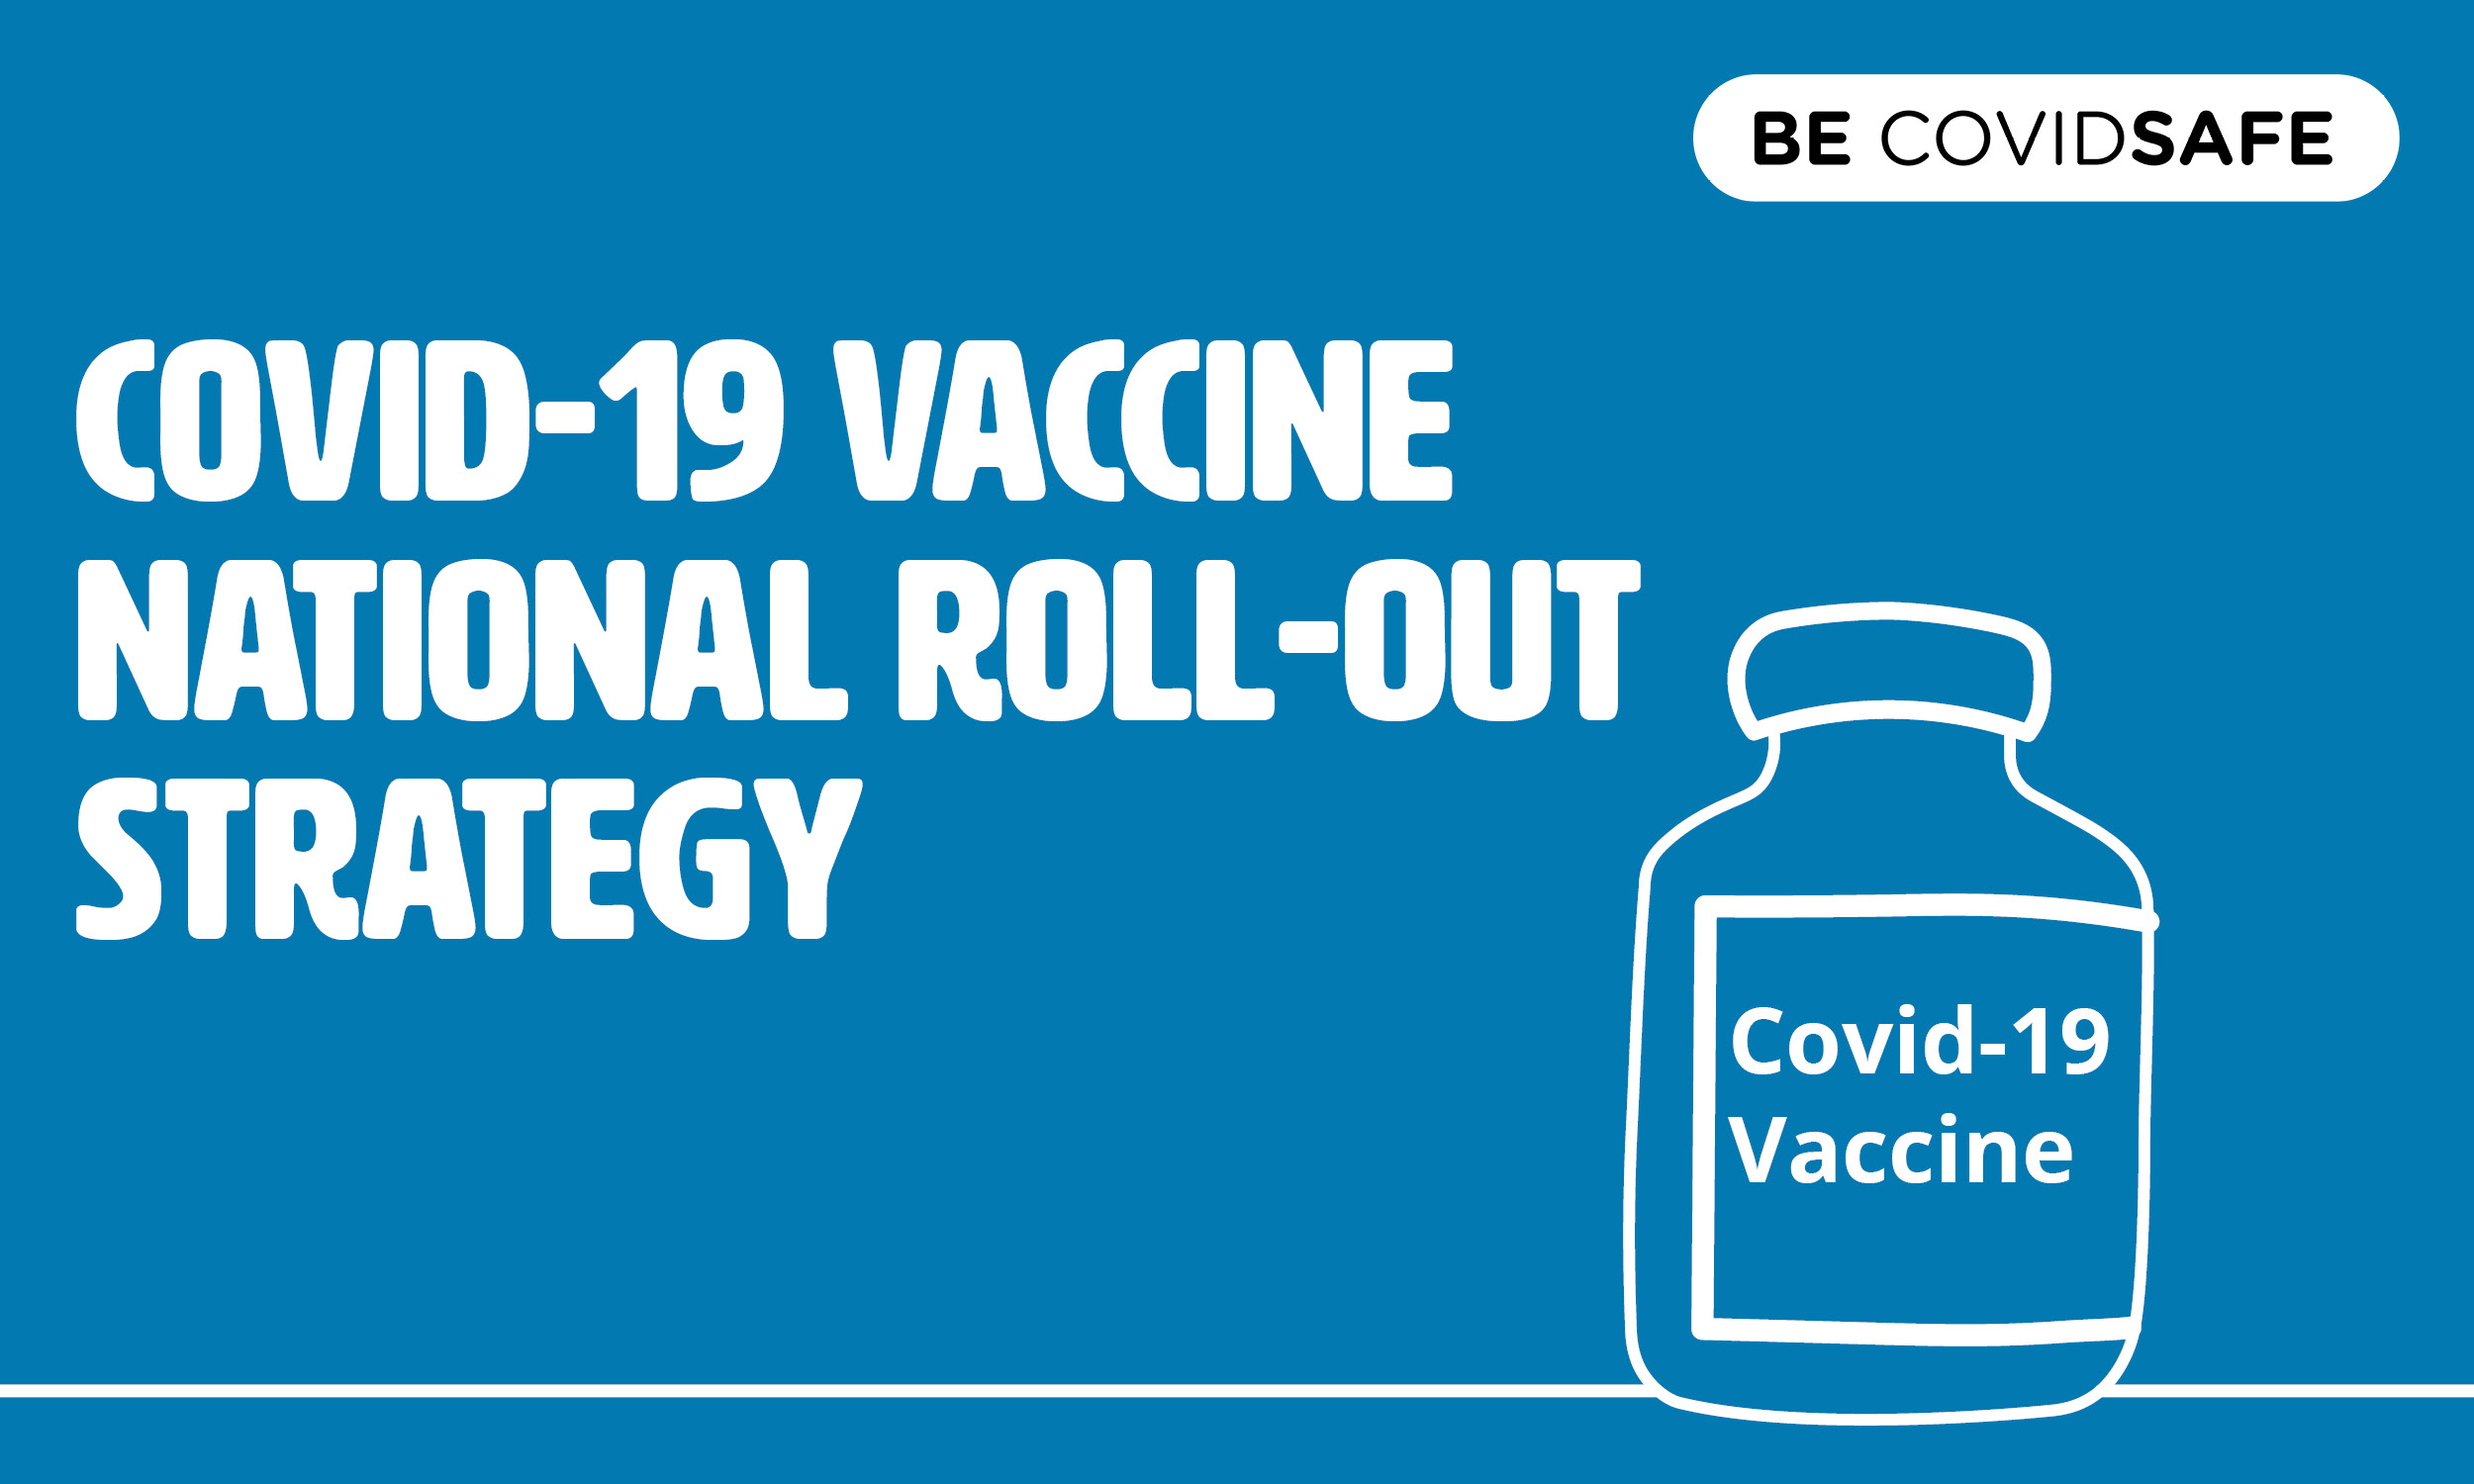 COVID-19 vaccine national rollout strategy